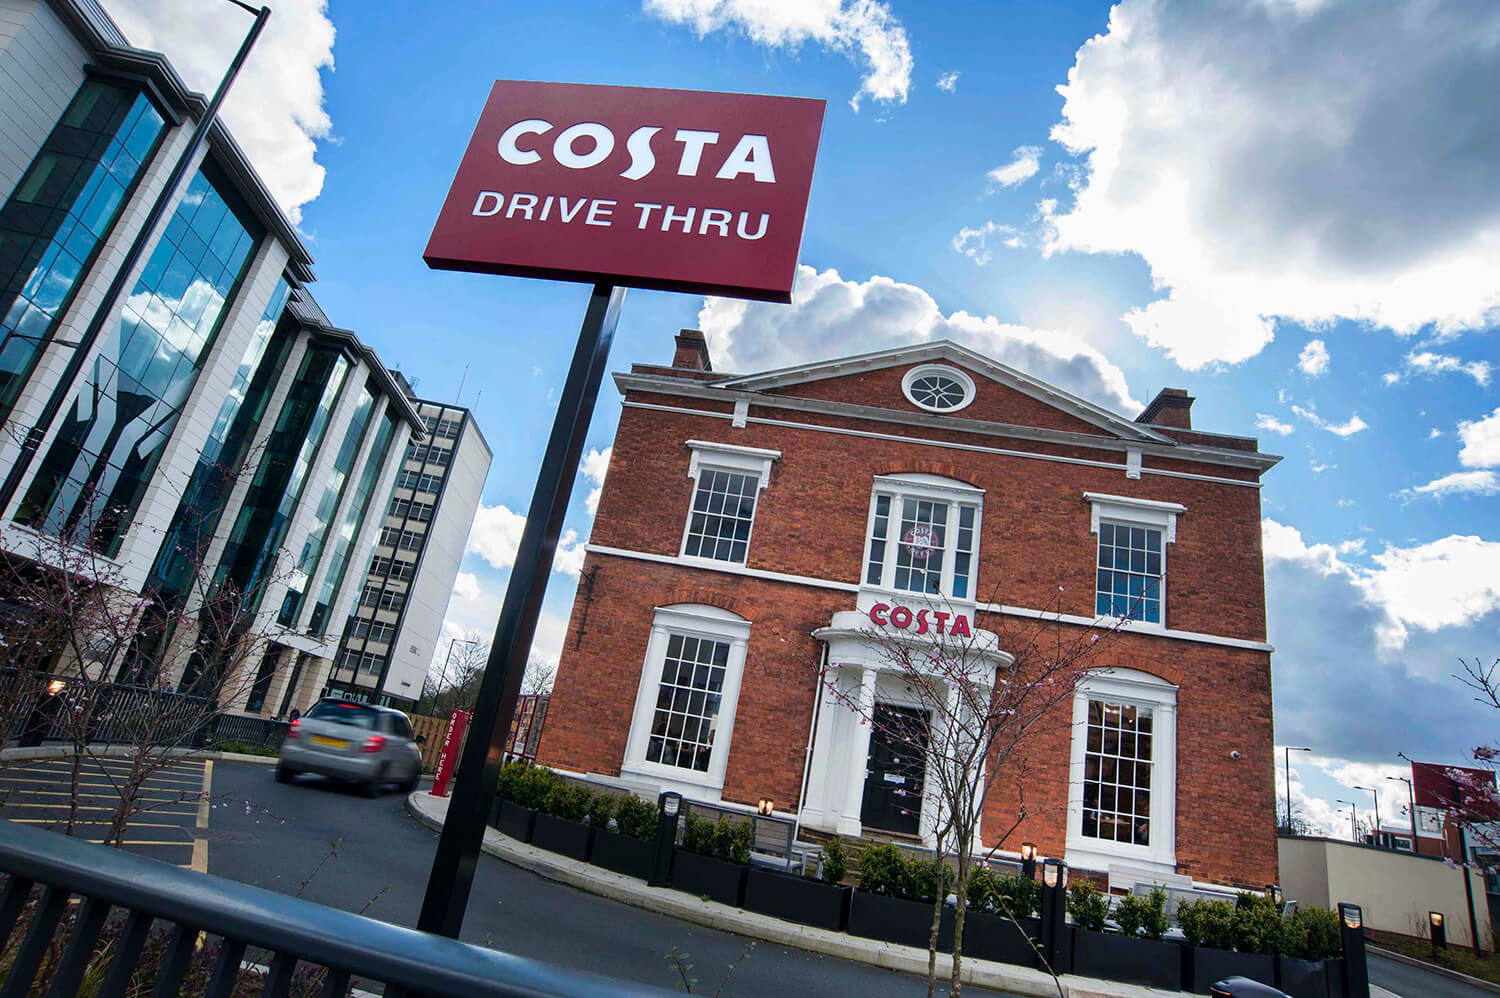 Costa Drive In - Location photography for brands